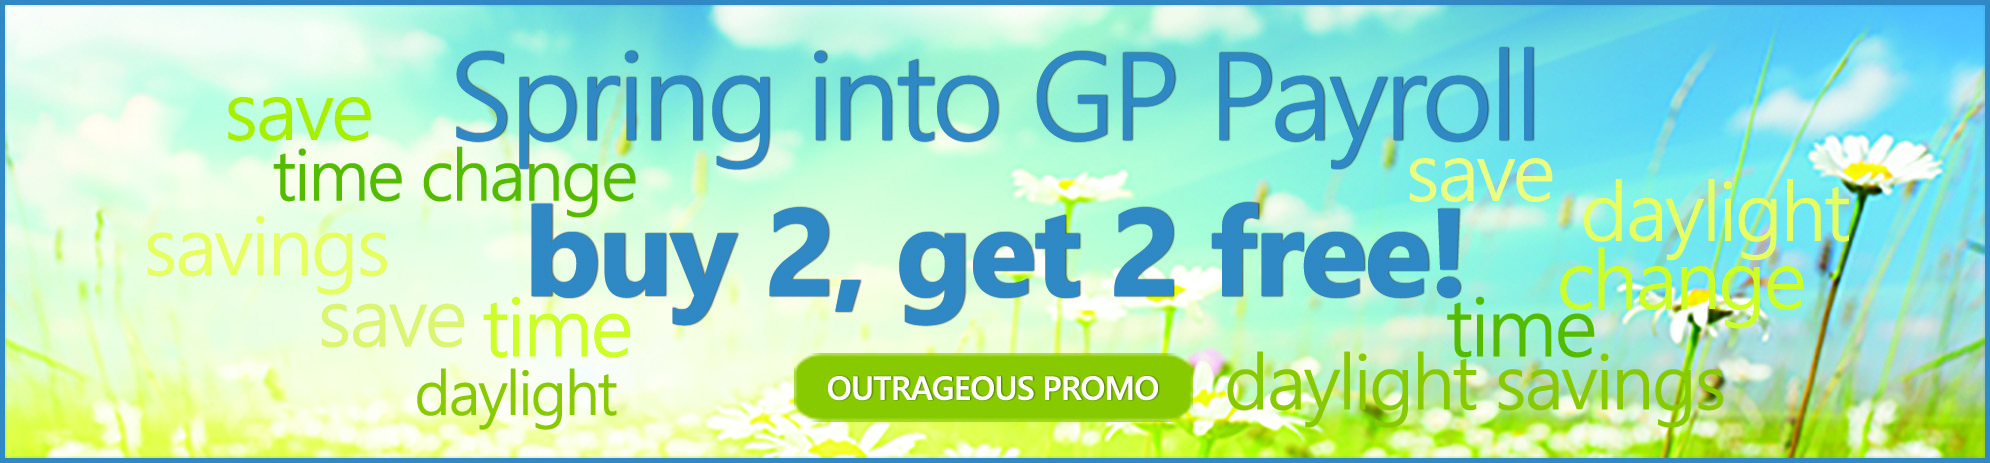 Spring into GP Payroll - Outrageous Promo Image